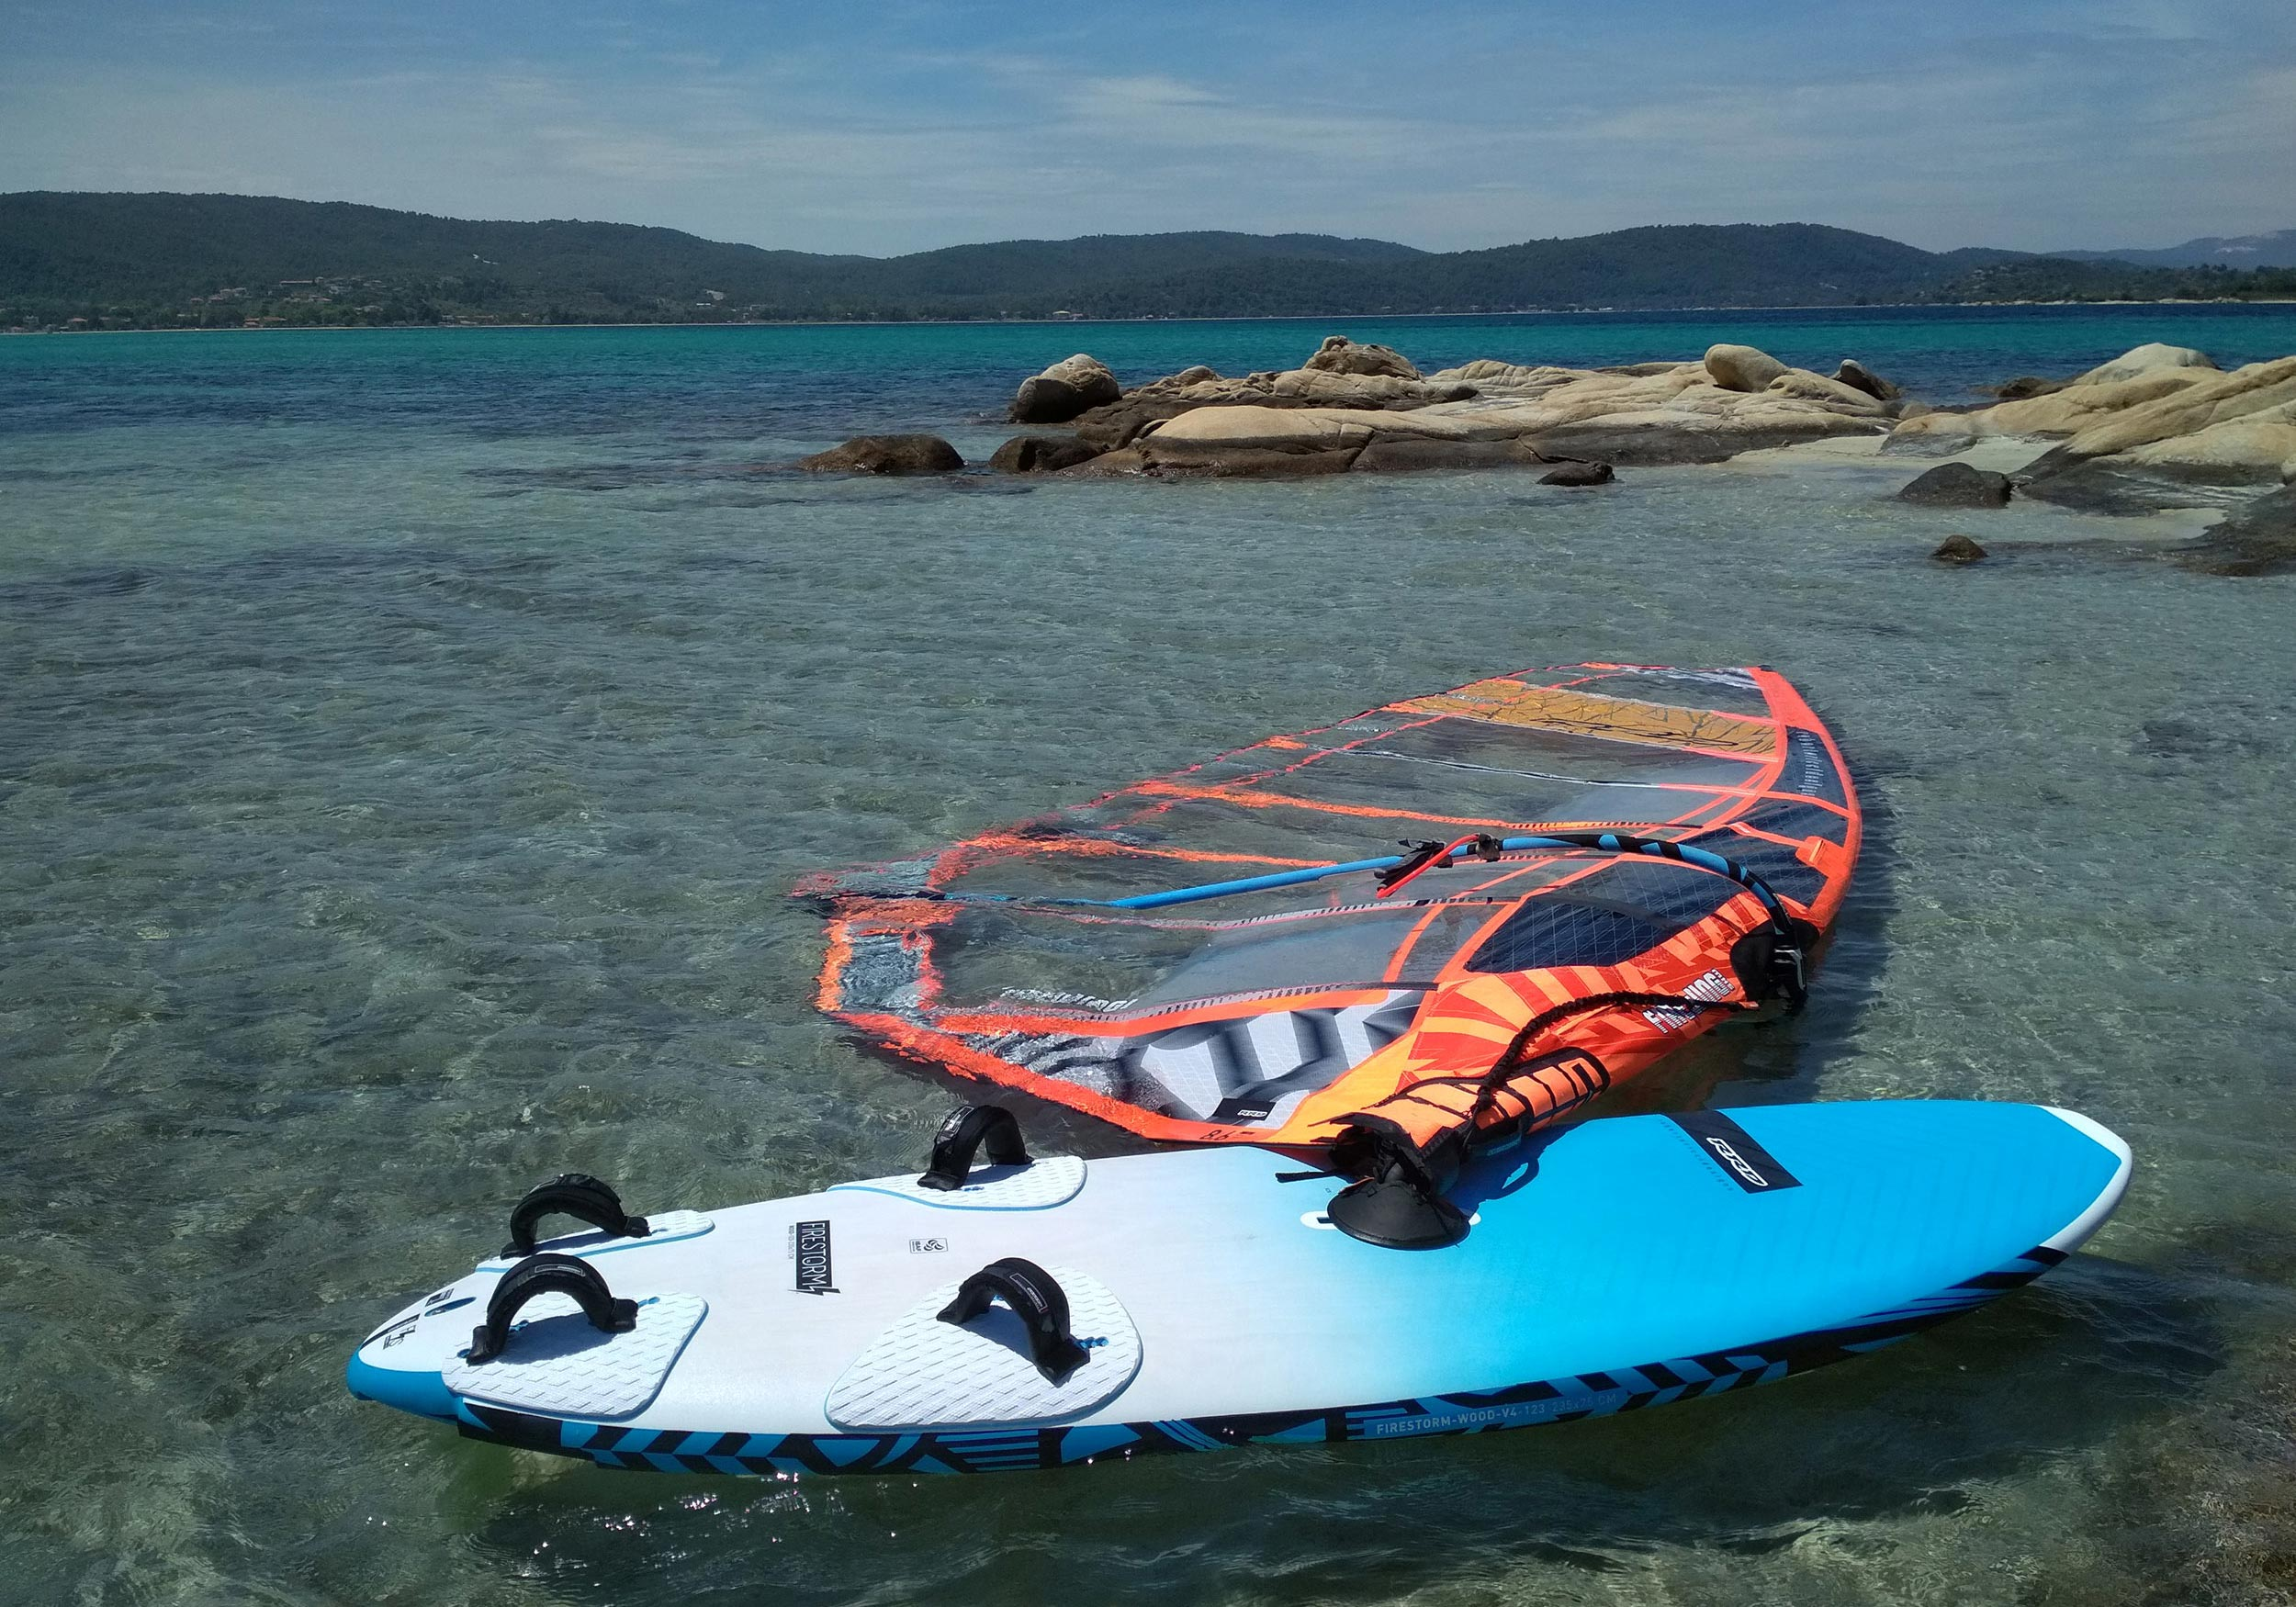 Windsurf board and sail in water.